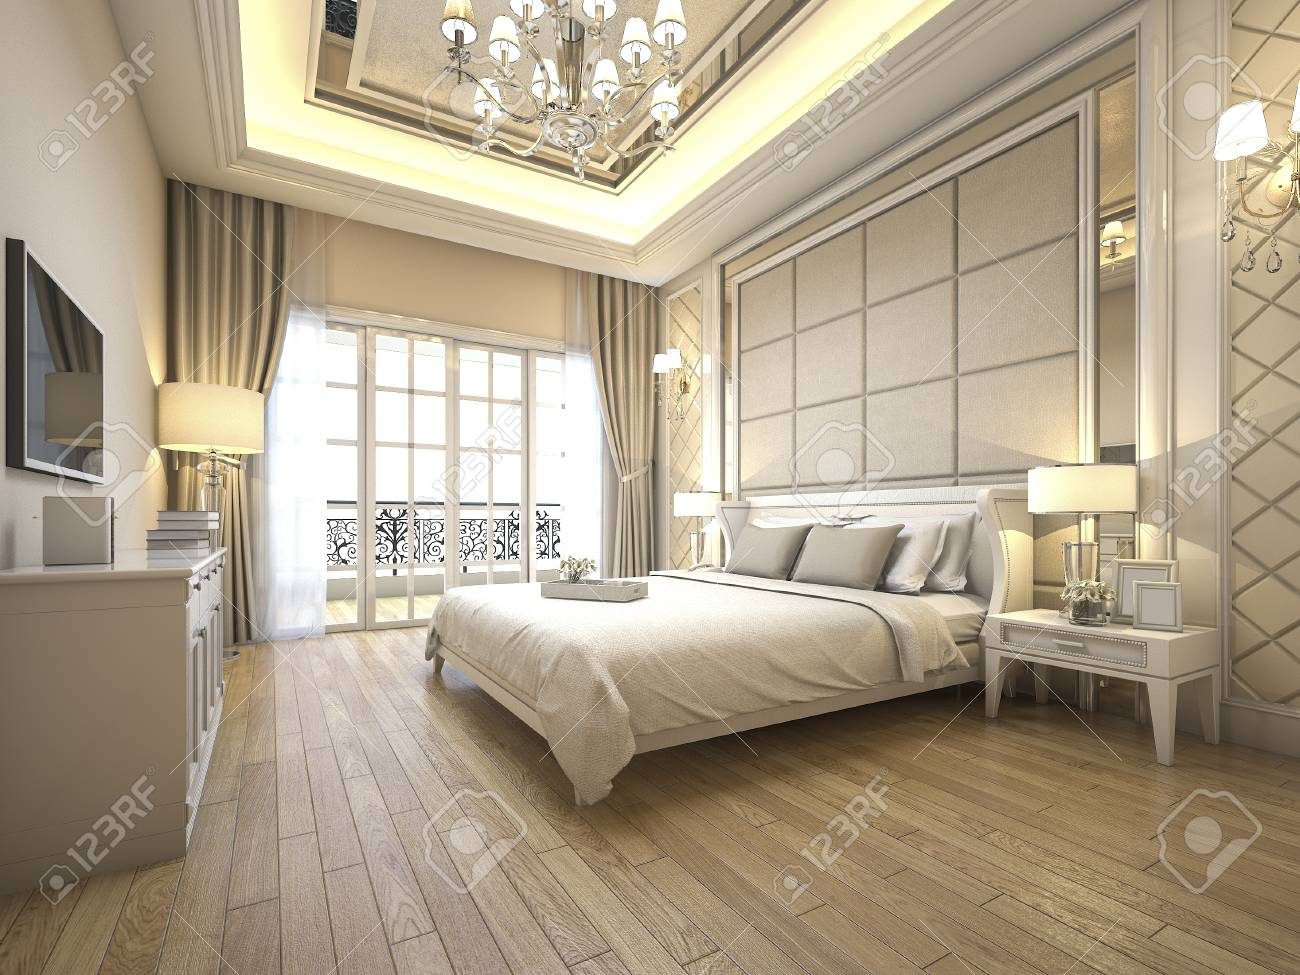 3d Rendering Modern Luxury Classic Bedroom With Marble Decor Stock